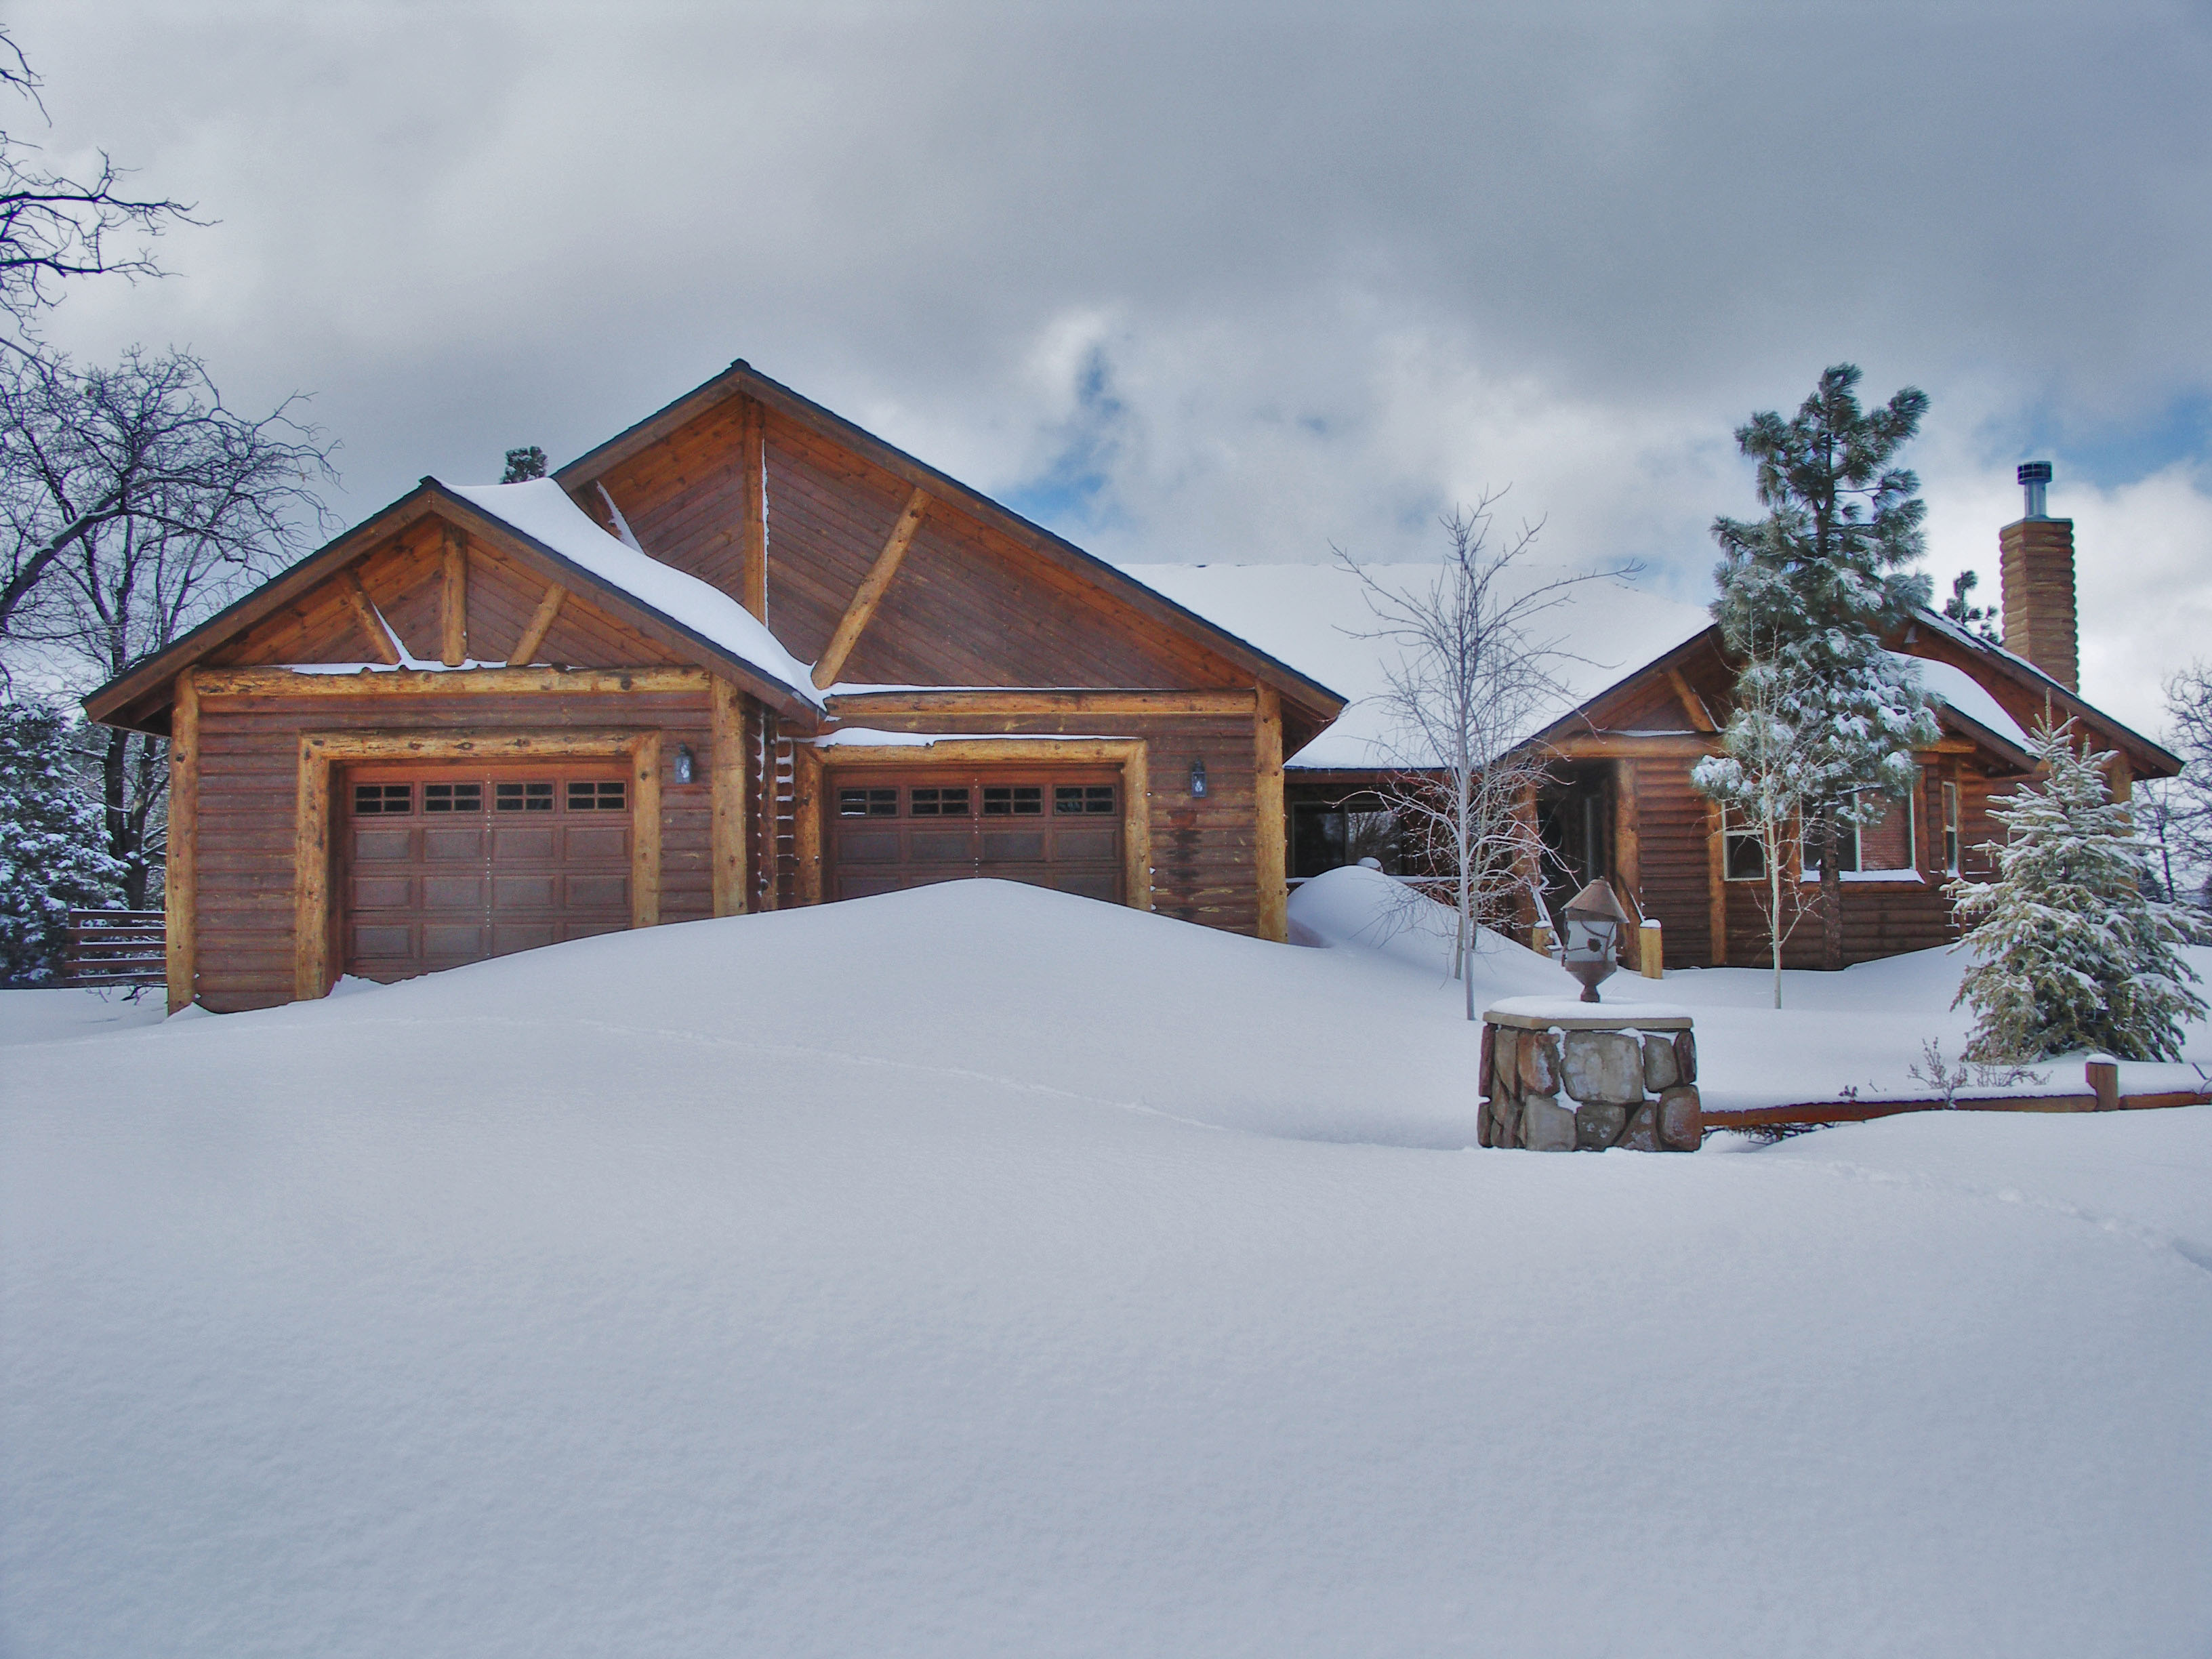 Home in High Timber Ranch with LOTS OF SNOW!